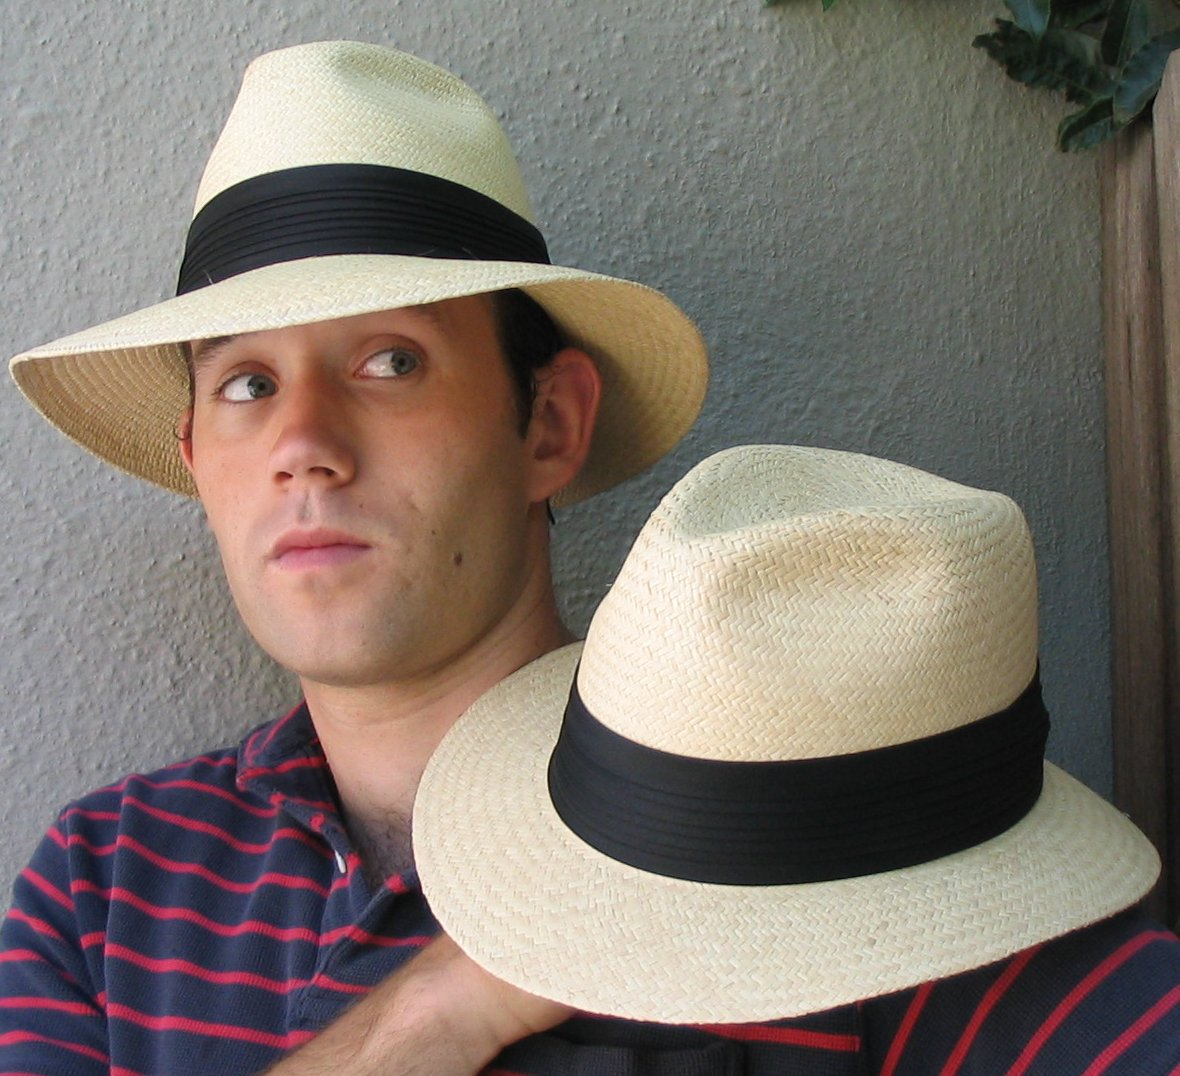 A Panama hat (toquilla straw hat) is a traditional brimmed straw hat of Ecuadorian origin. Traditionally, hats were made from the plaited leaves of the Carludovica palmata plant, known locally as the toquilla palm or jipijapa palm, [1] although it is a palm-like plant rather than a true palm.